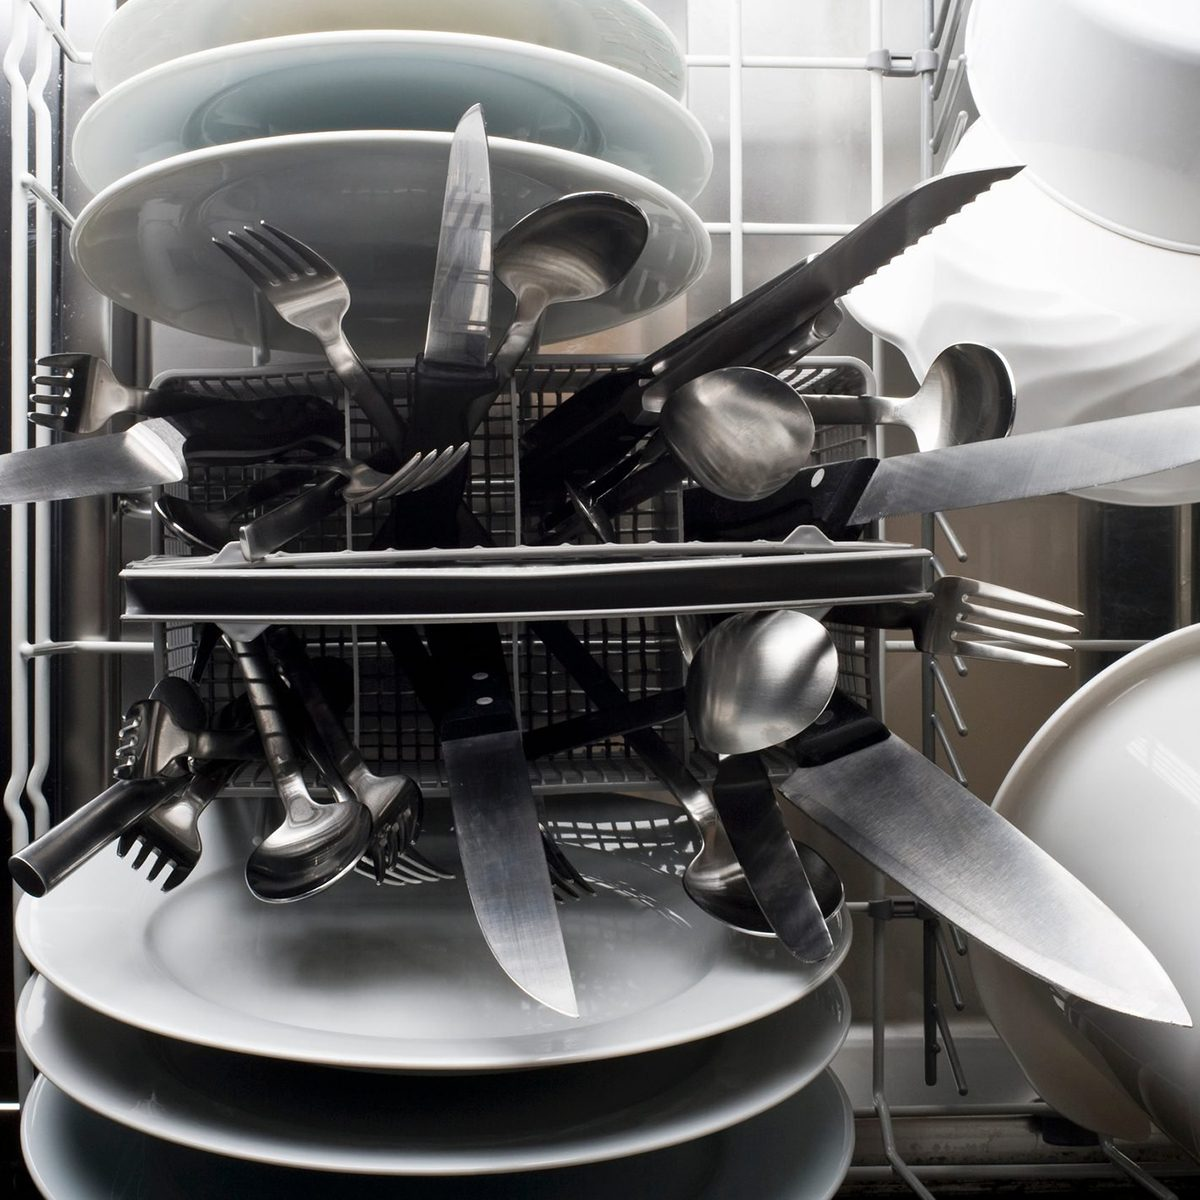 A dishwasher with knives sticking dangerously point side up